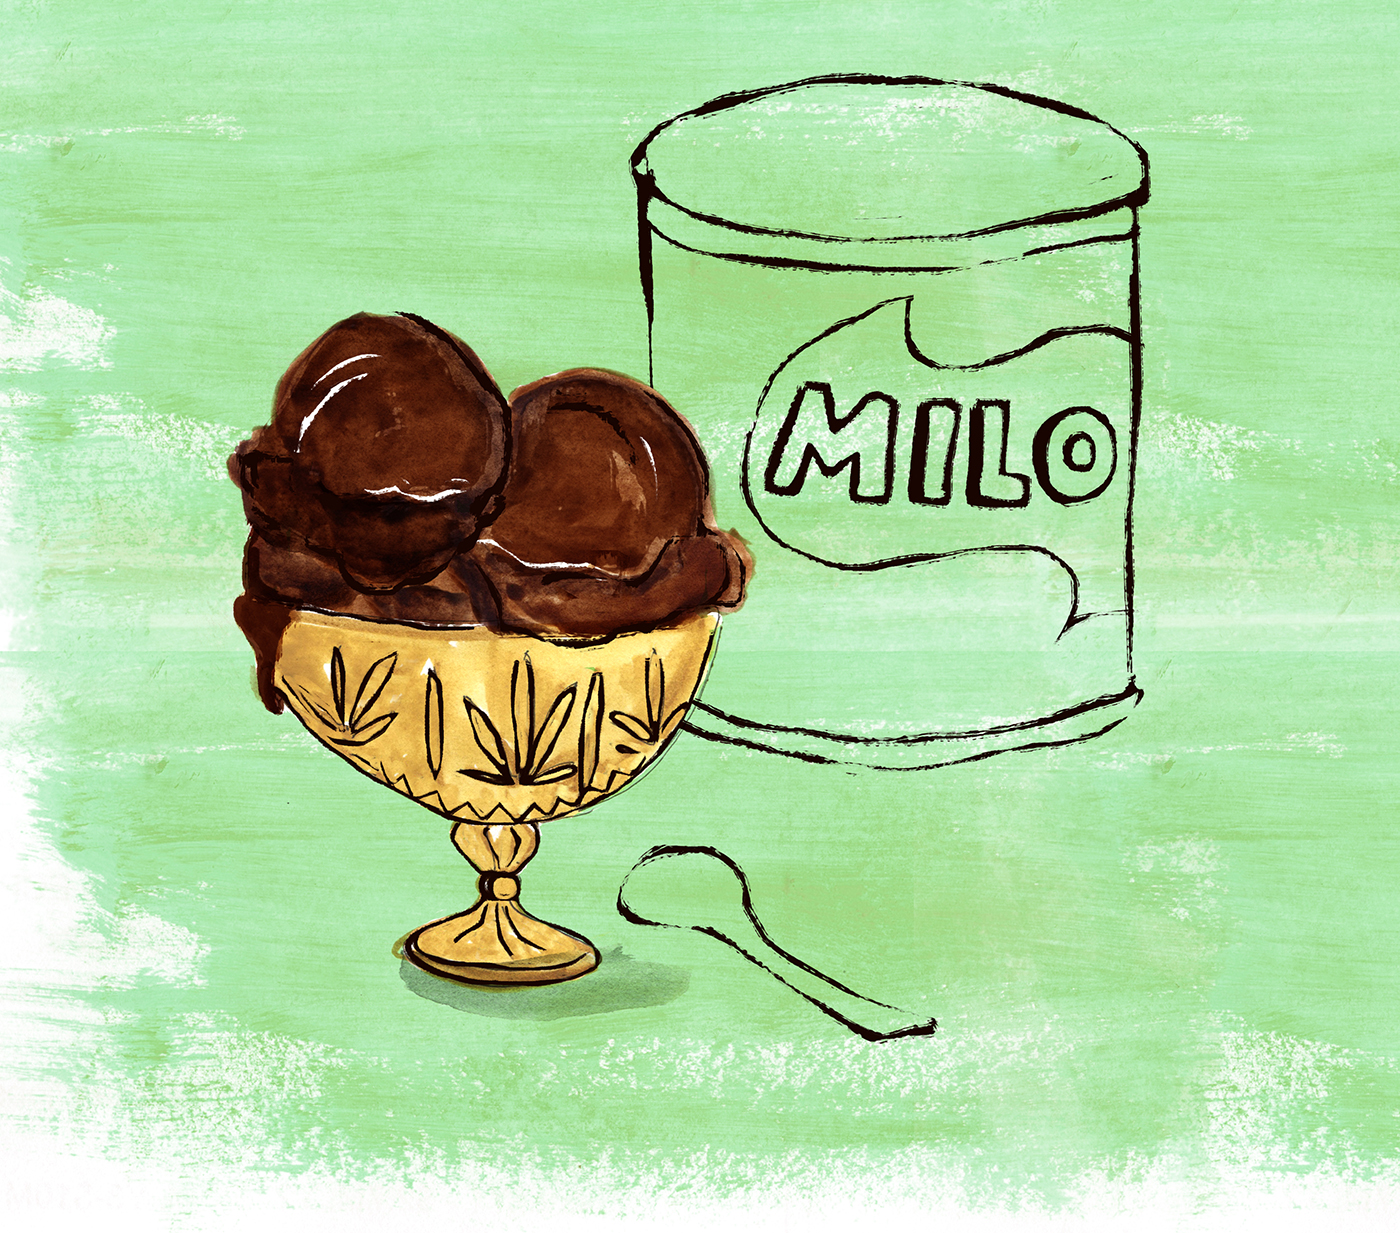 Milo Ice Cream, Chocolate, Lauren Monaco Illustration